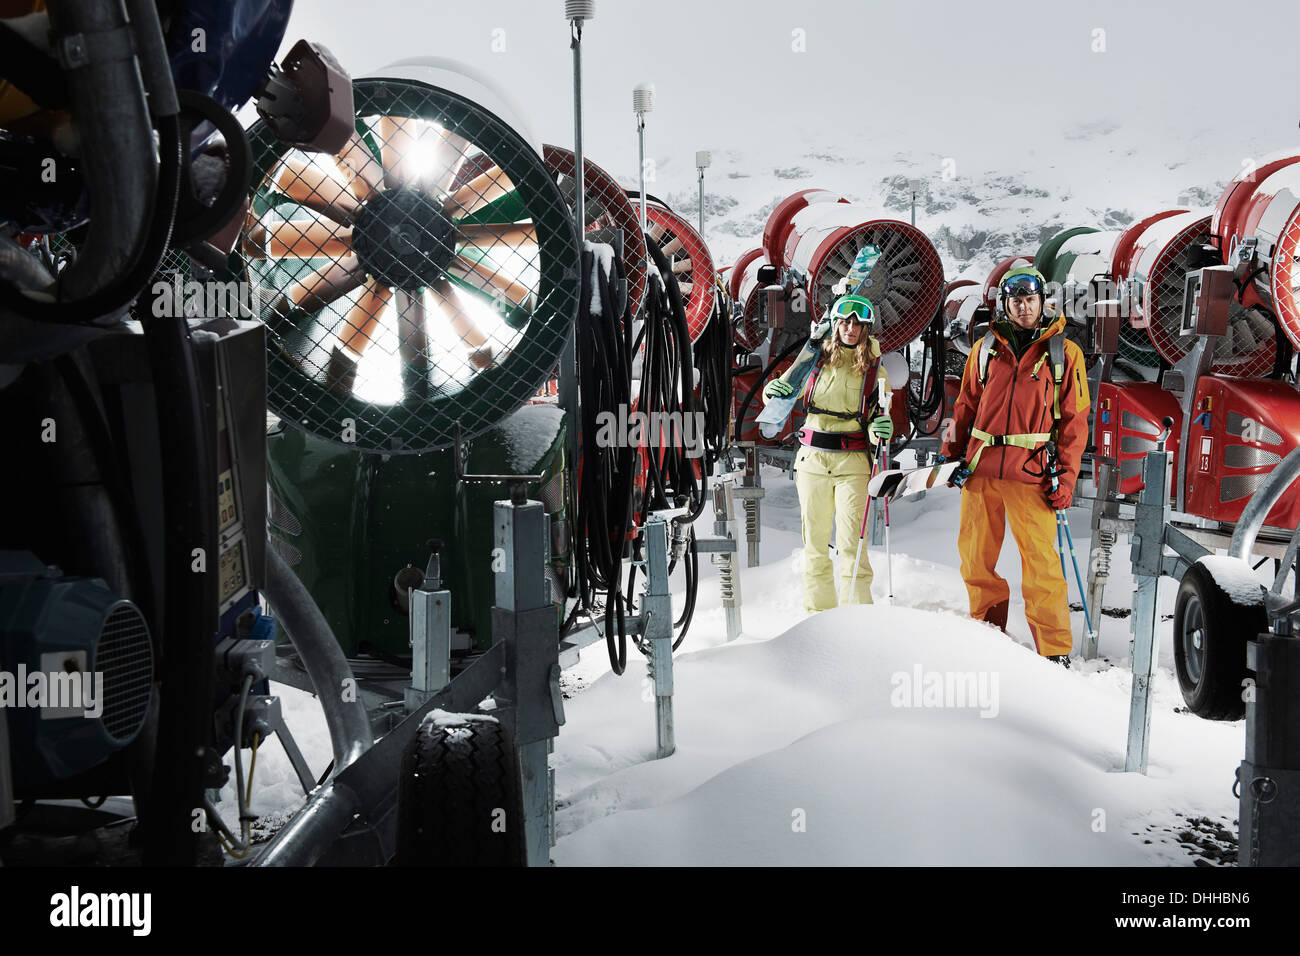 Young people standing among snowmobiles - Stock Image